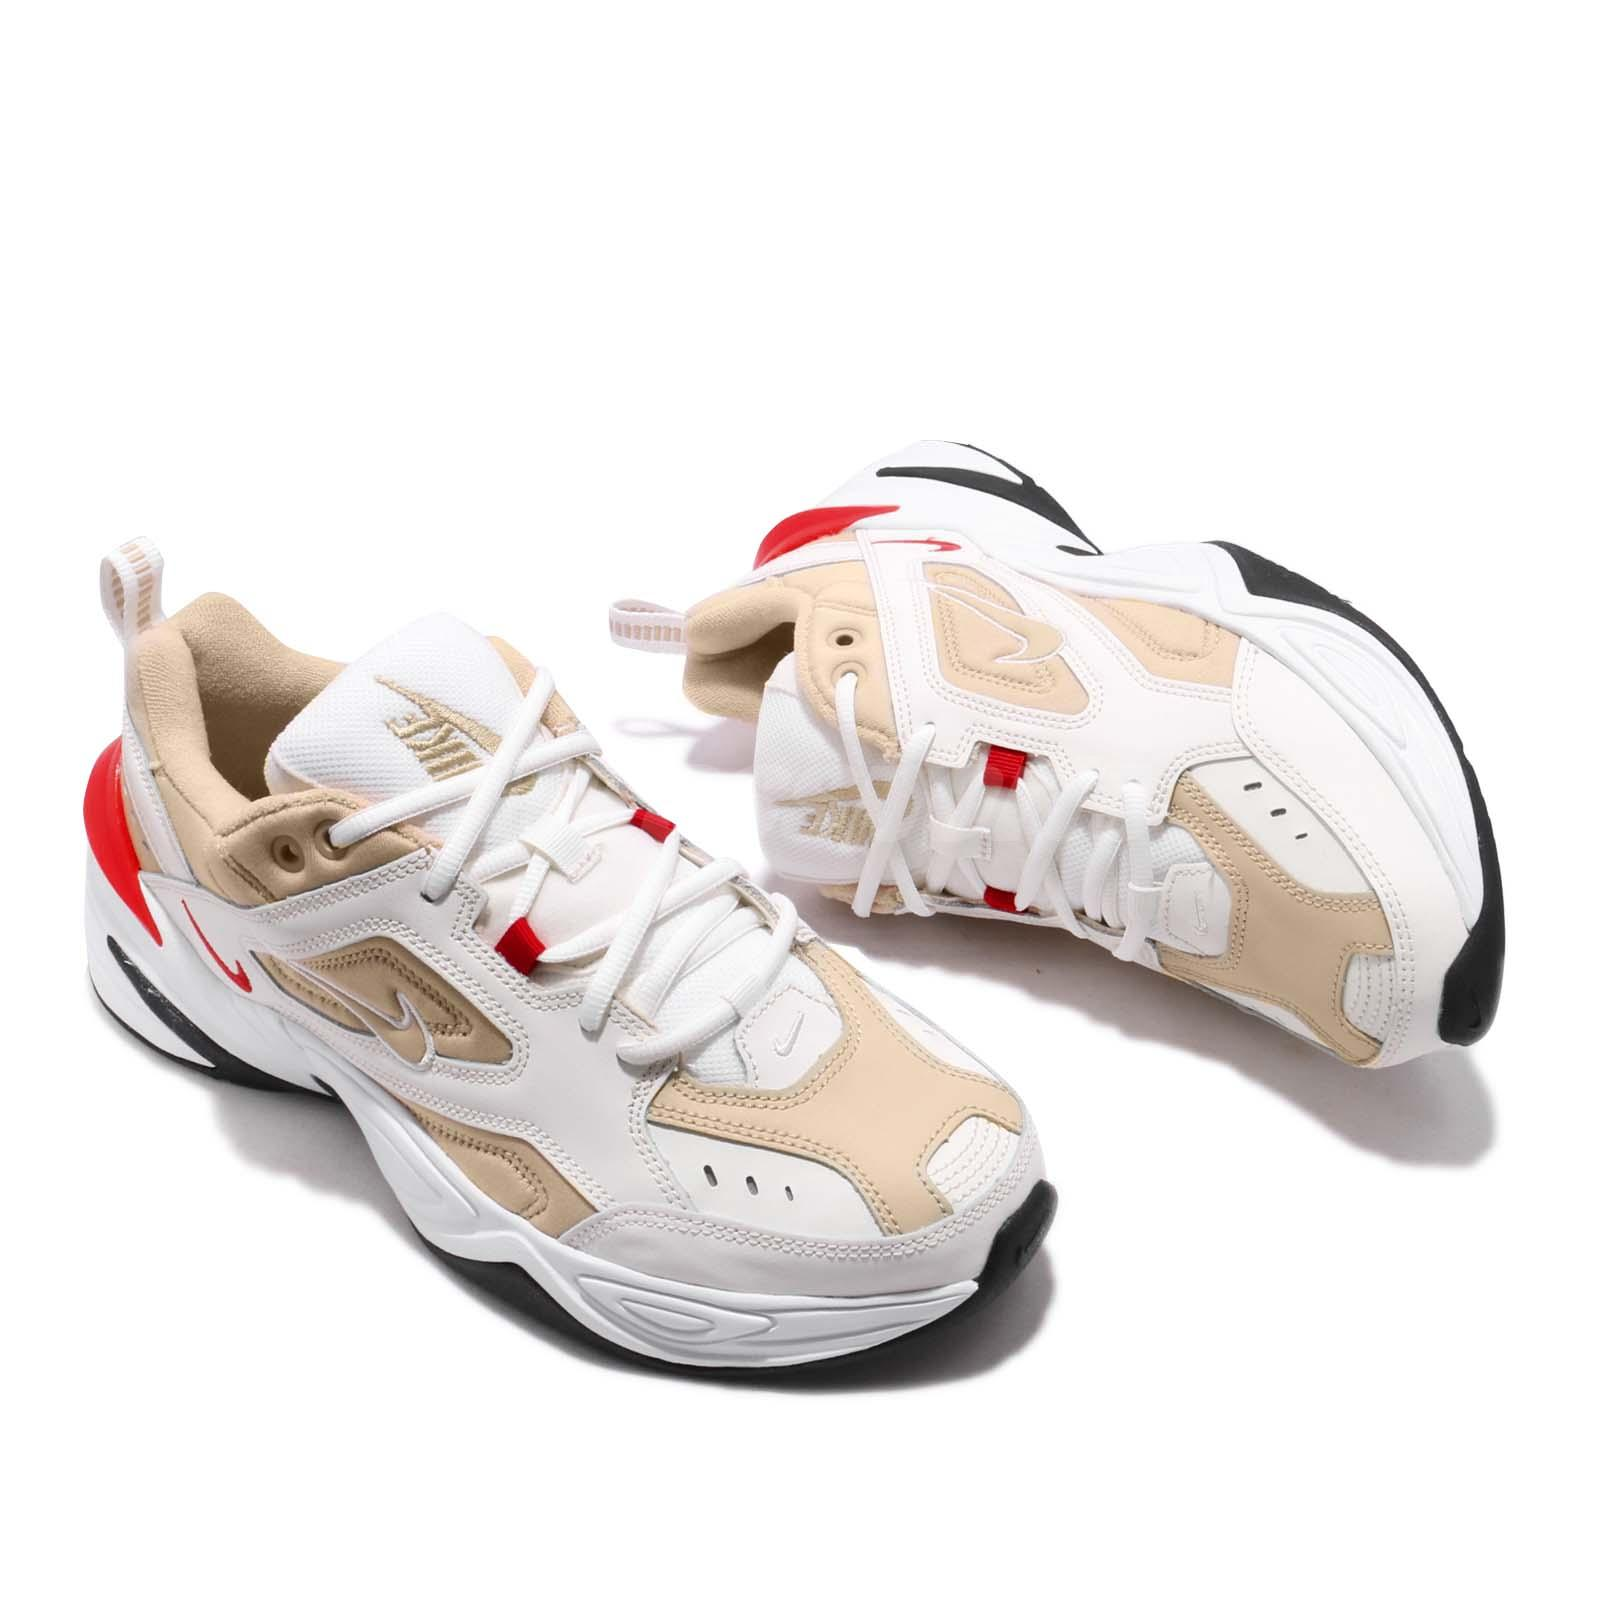 c84be07847a4 Nike M2K Tekno Sail Habanero Red Mens Daddy Shoes Chunky Sneakers ...